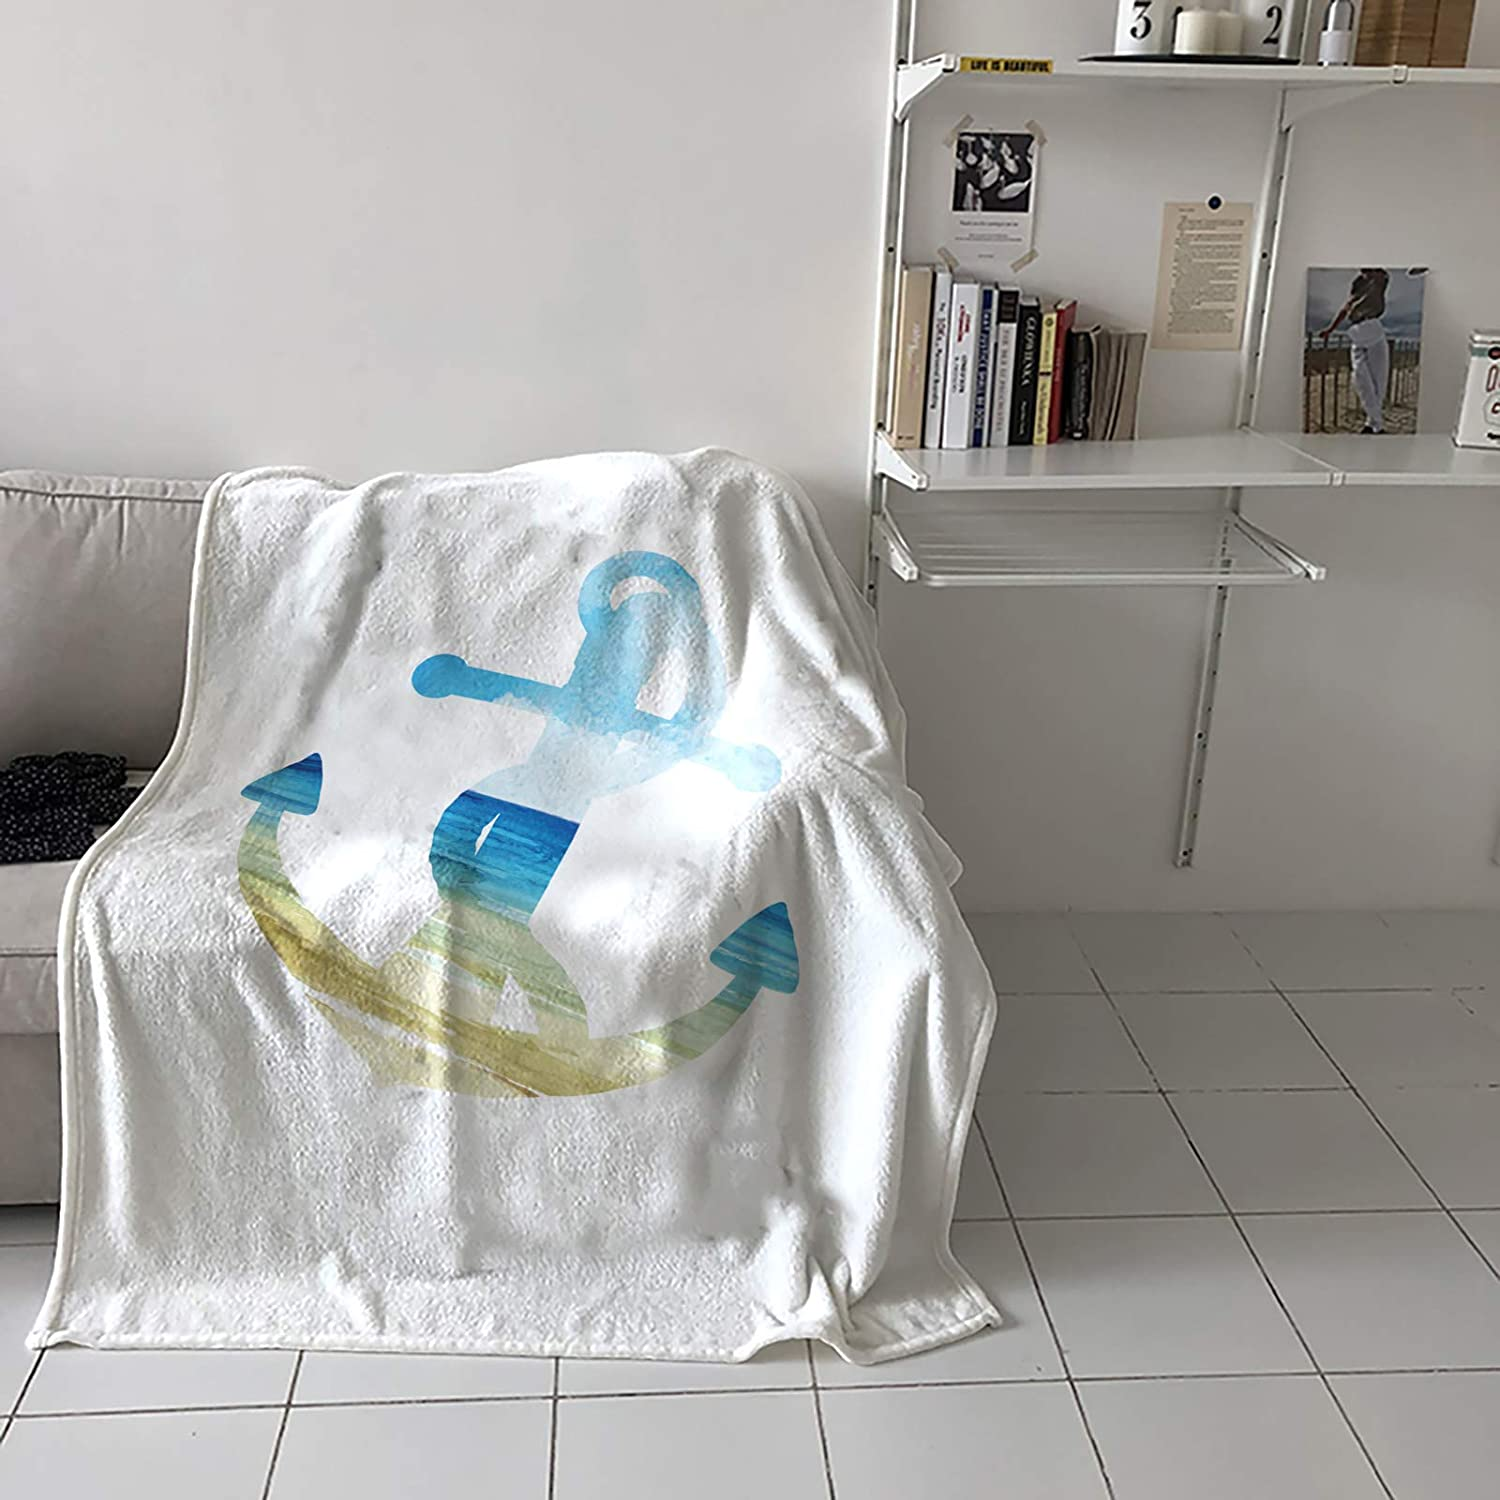 Advancey Super Soft Blankets and Throws wi Anchor Popular product Beach Ranking TOP3 Star Sea